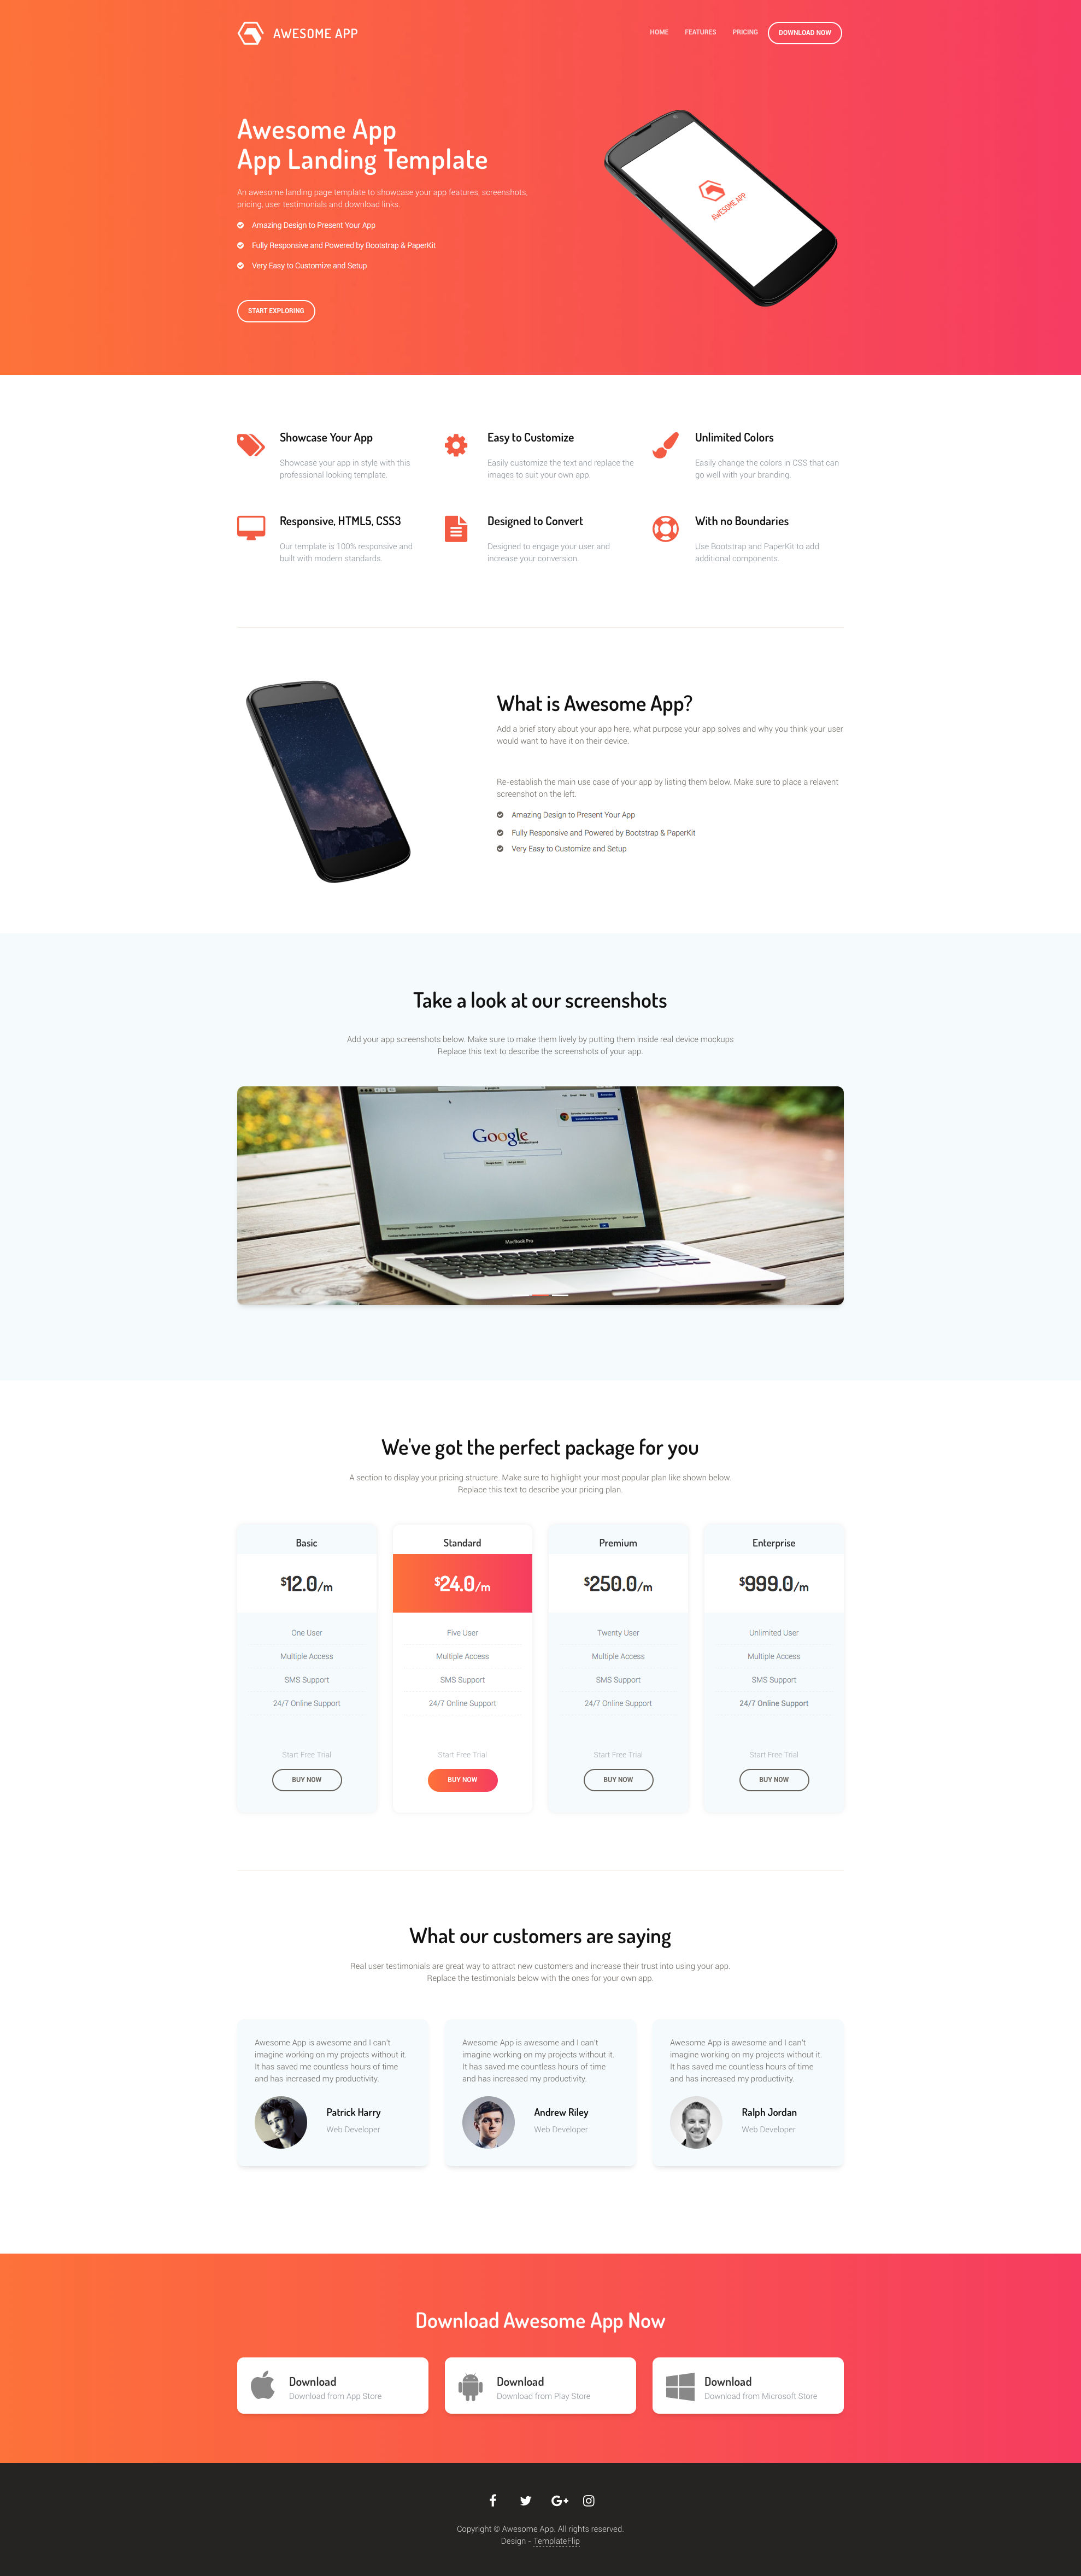 Awesome App Free responsive HTML5 Bootstrap Landing page template